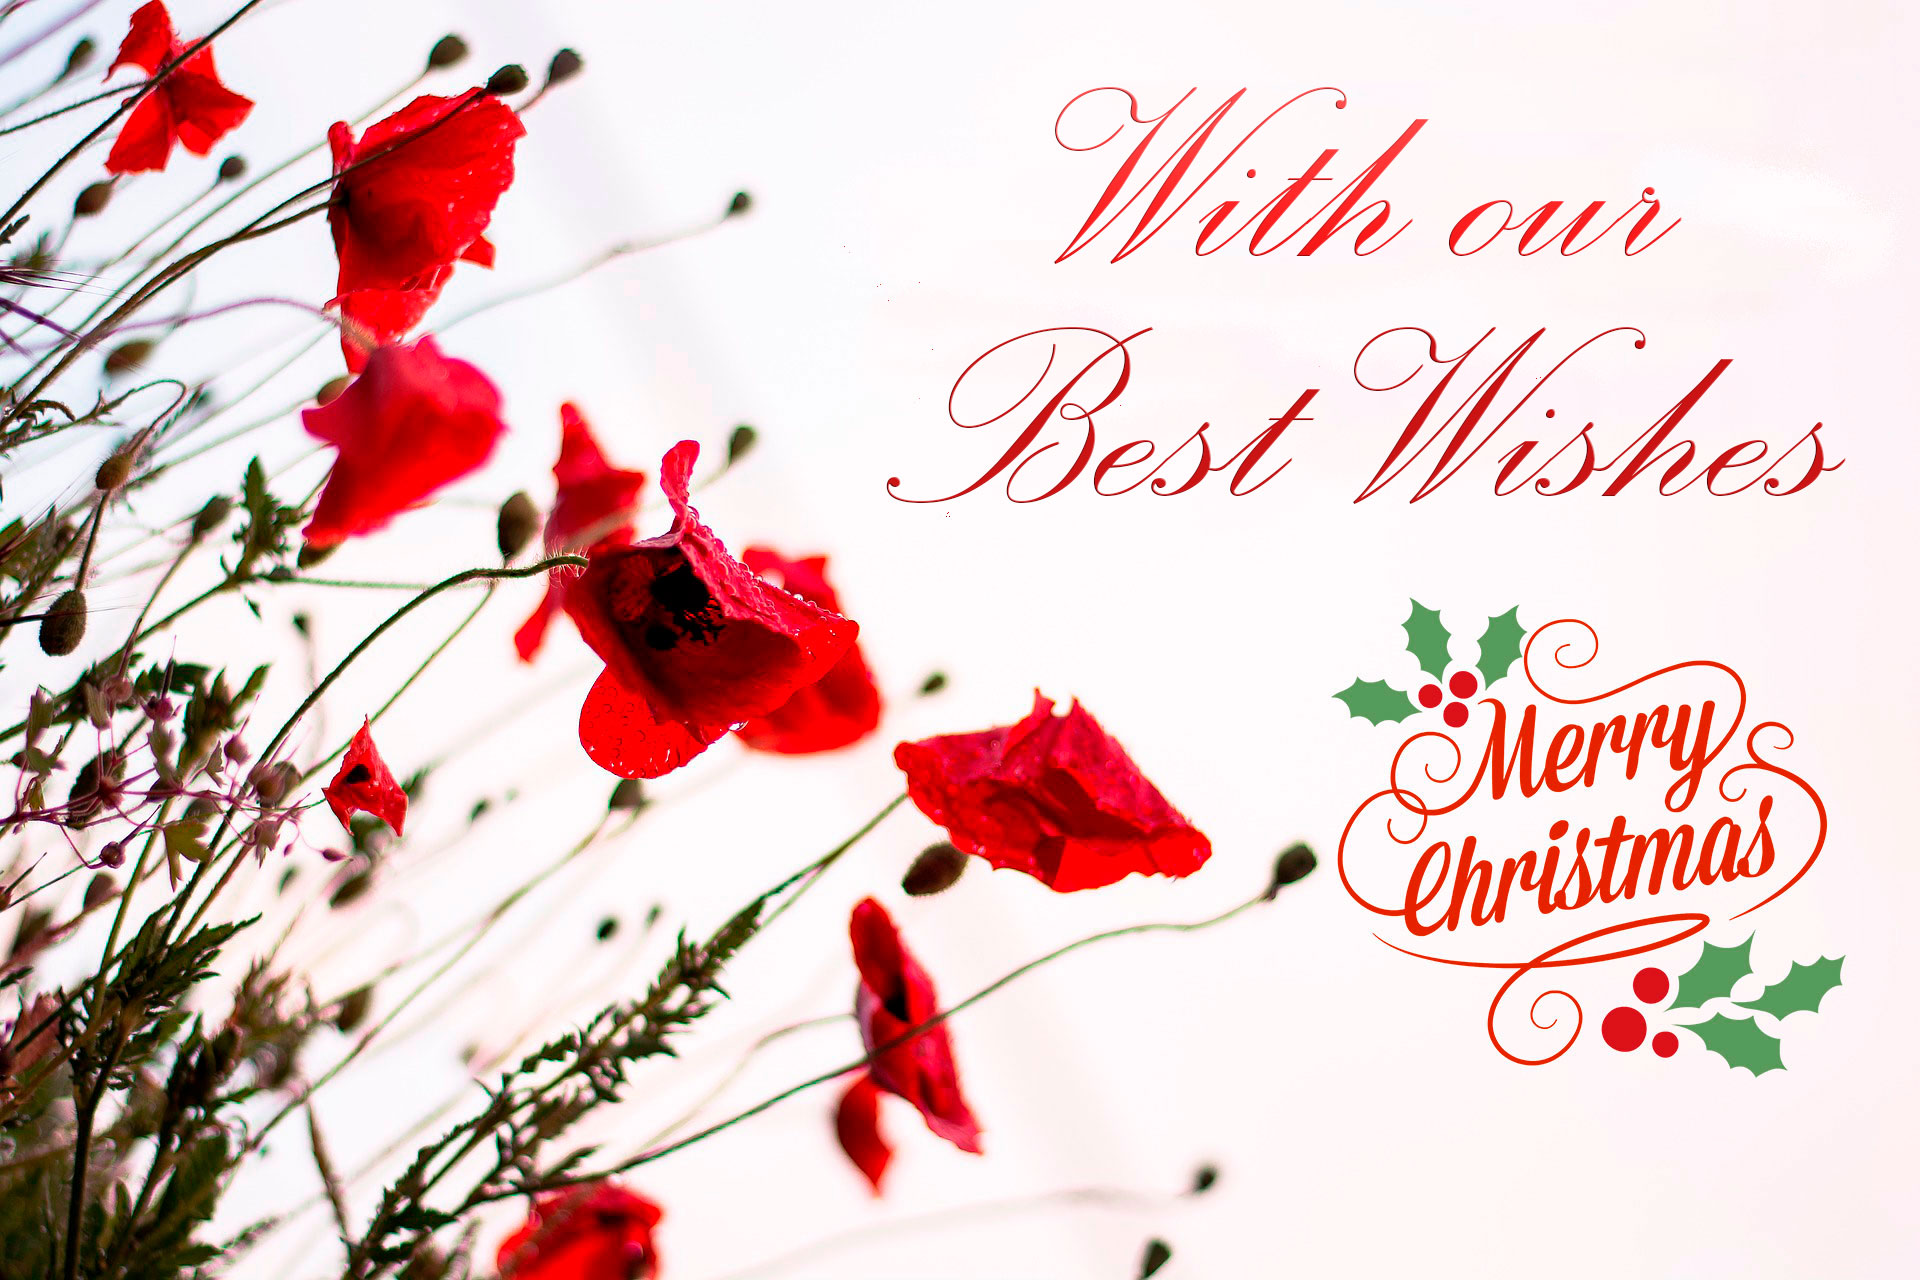 With our best wishes